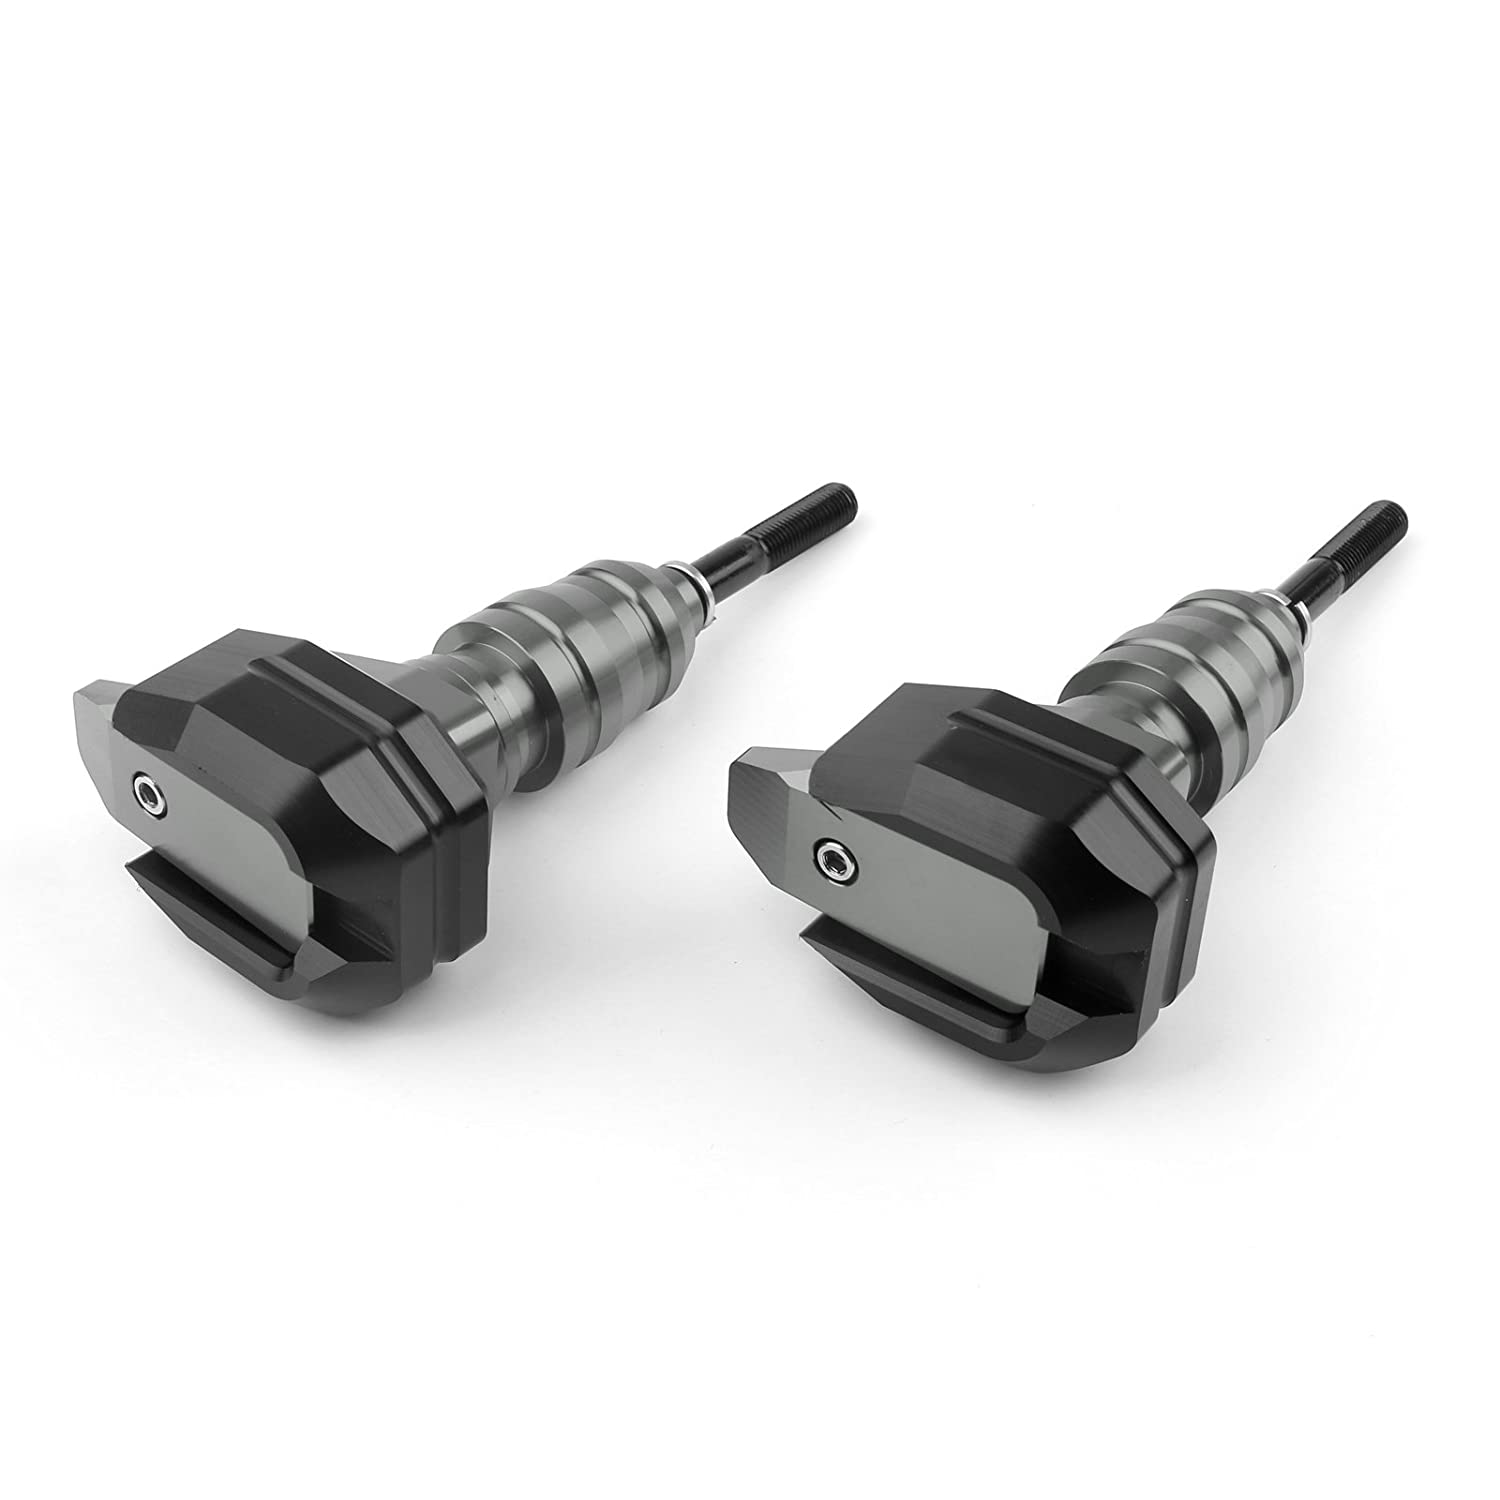 Areyourshop Frame Sliders Crash Protector For Z1000 ZX6R ZX10R